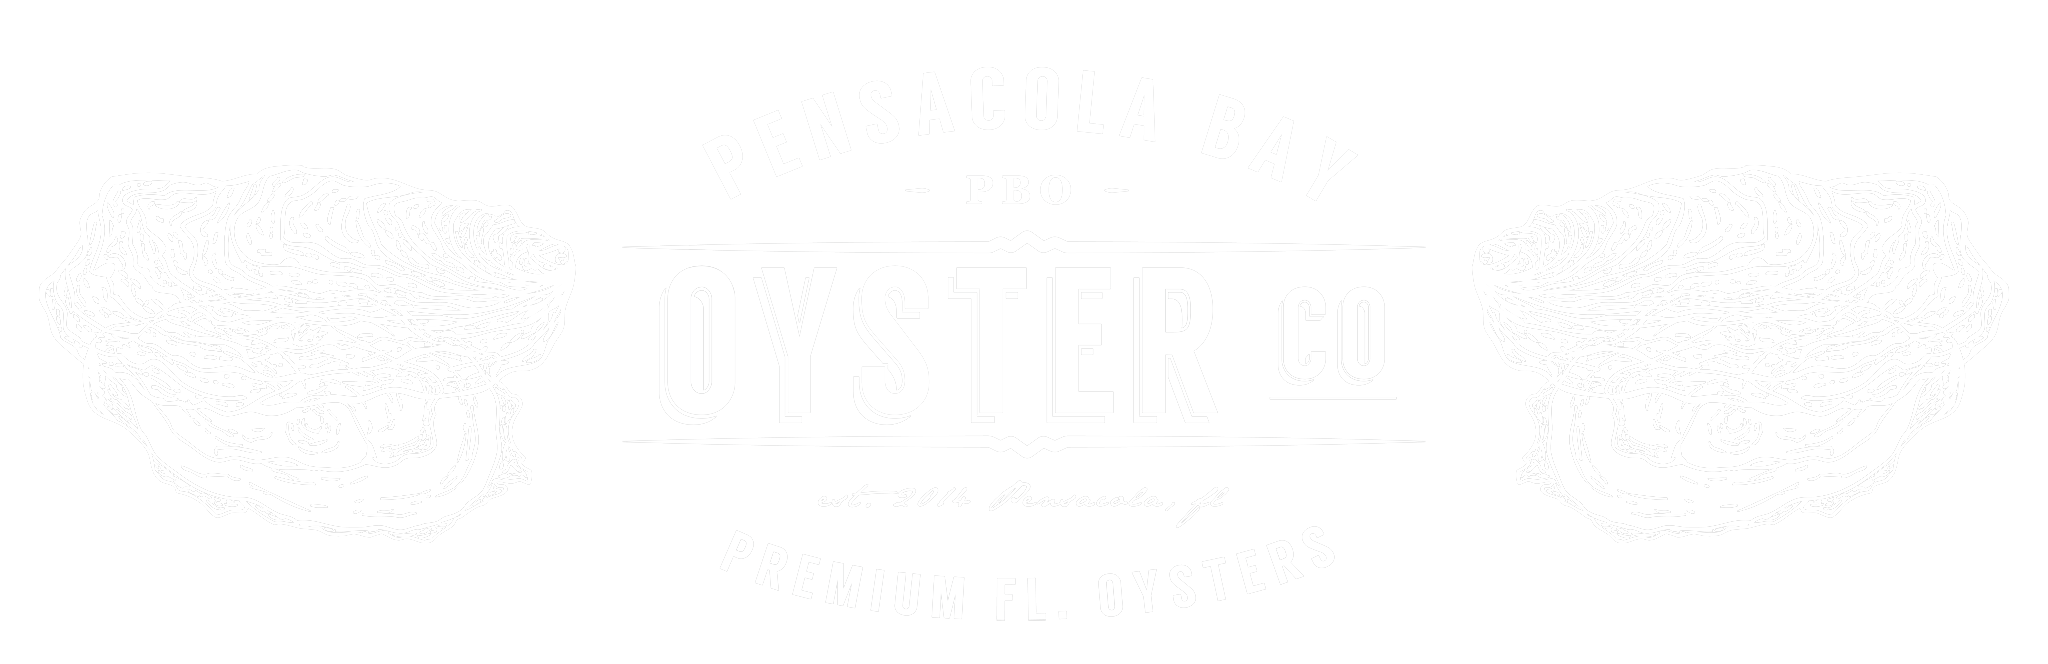 Pensacola Bay Oyster Co.